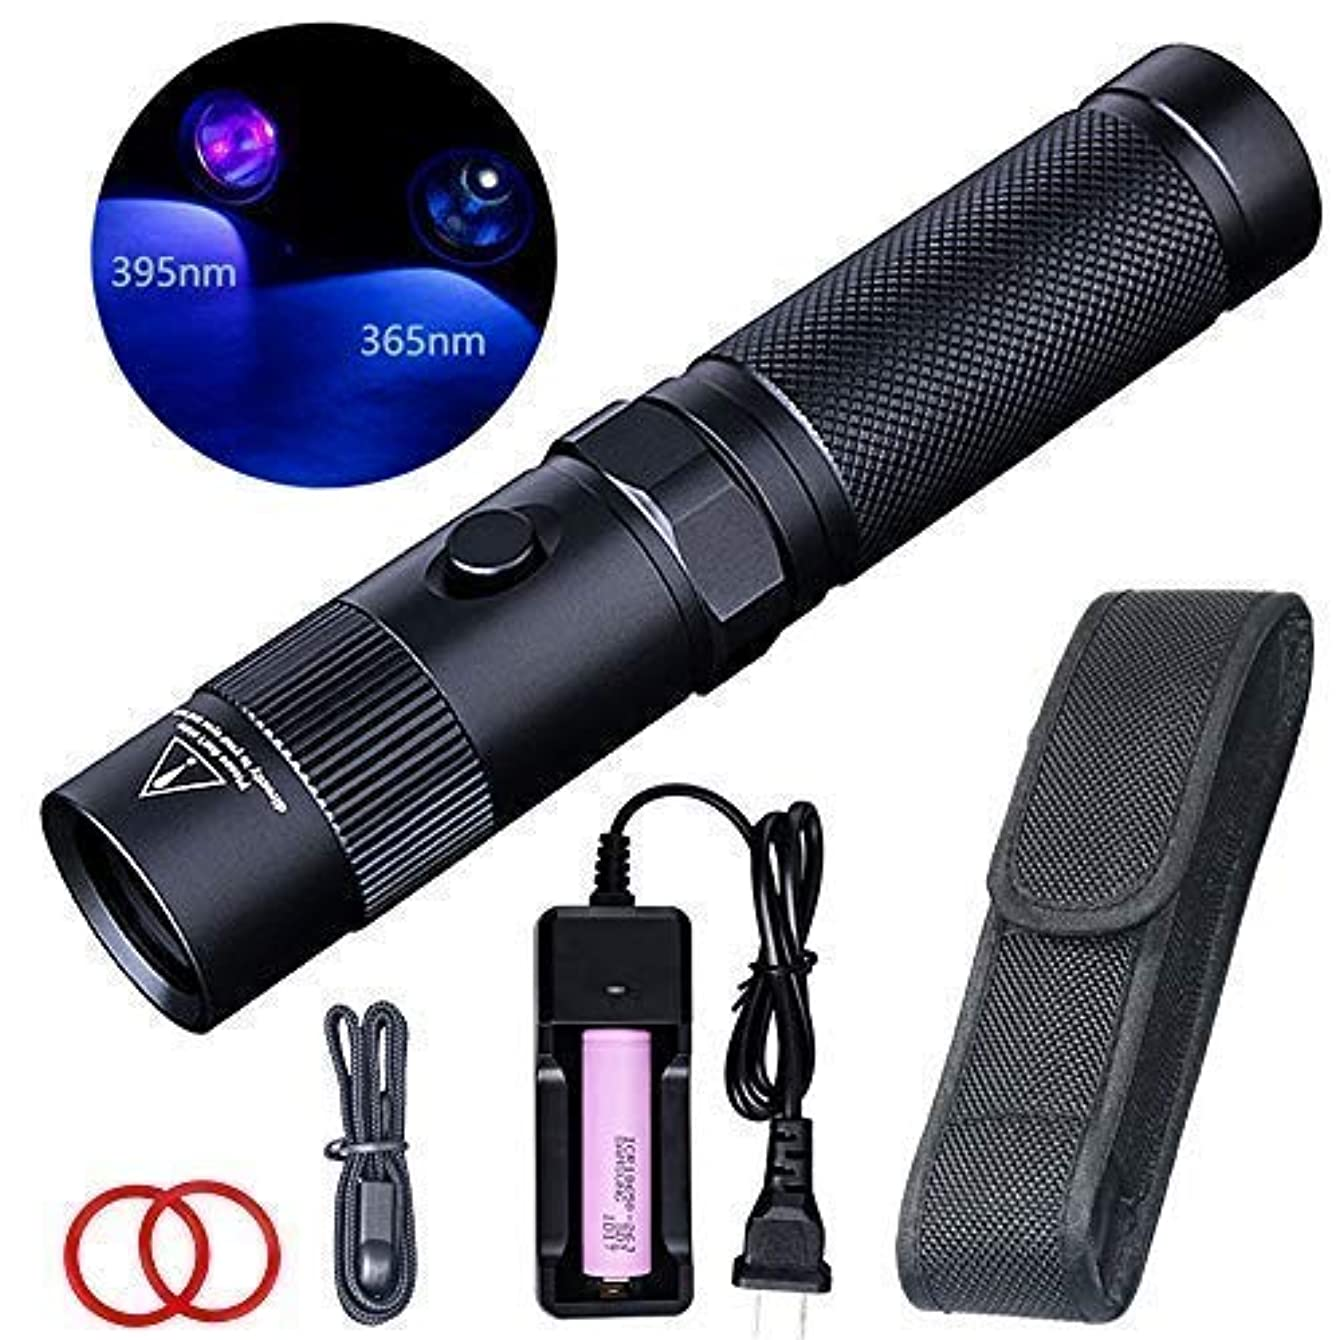 LIGHTFE UV Flashlight 365nm UV Black light UV302D with LG UV LED Source, Black Filter Lens, Max.3000mW high power for UV Glue Curing, Rocks and Mineral Glowing, Pet Urine Detector, AC Leak Detector …